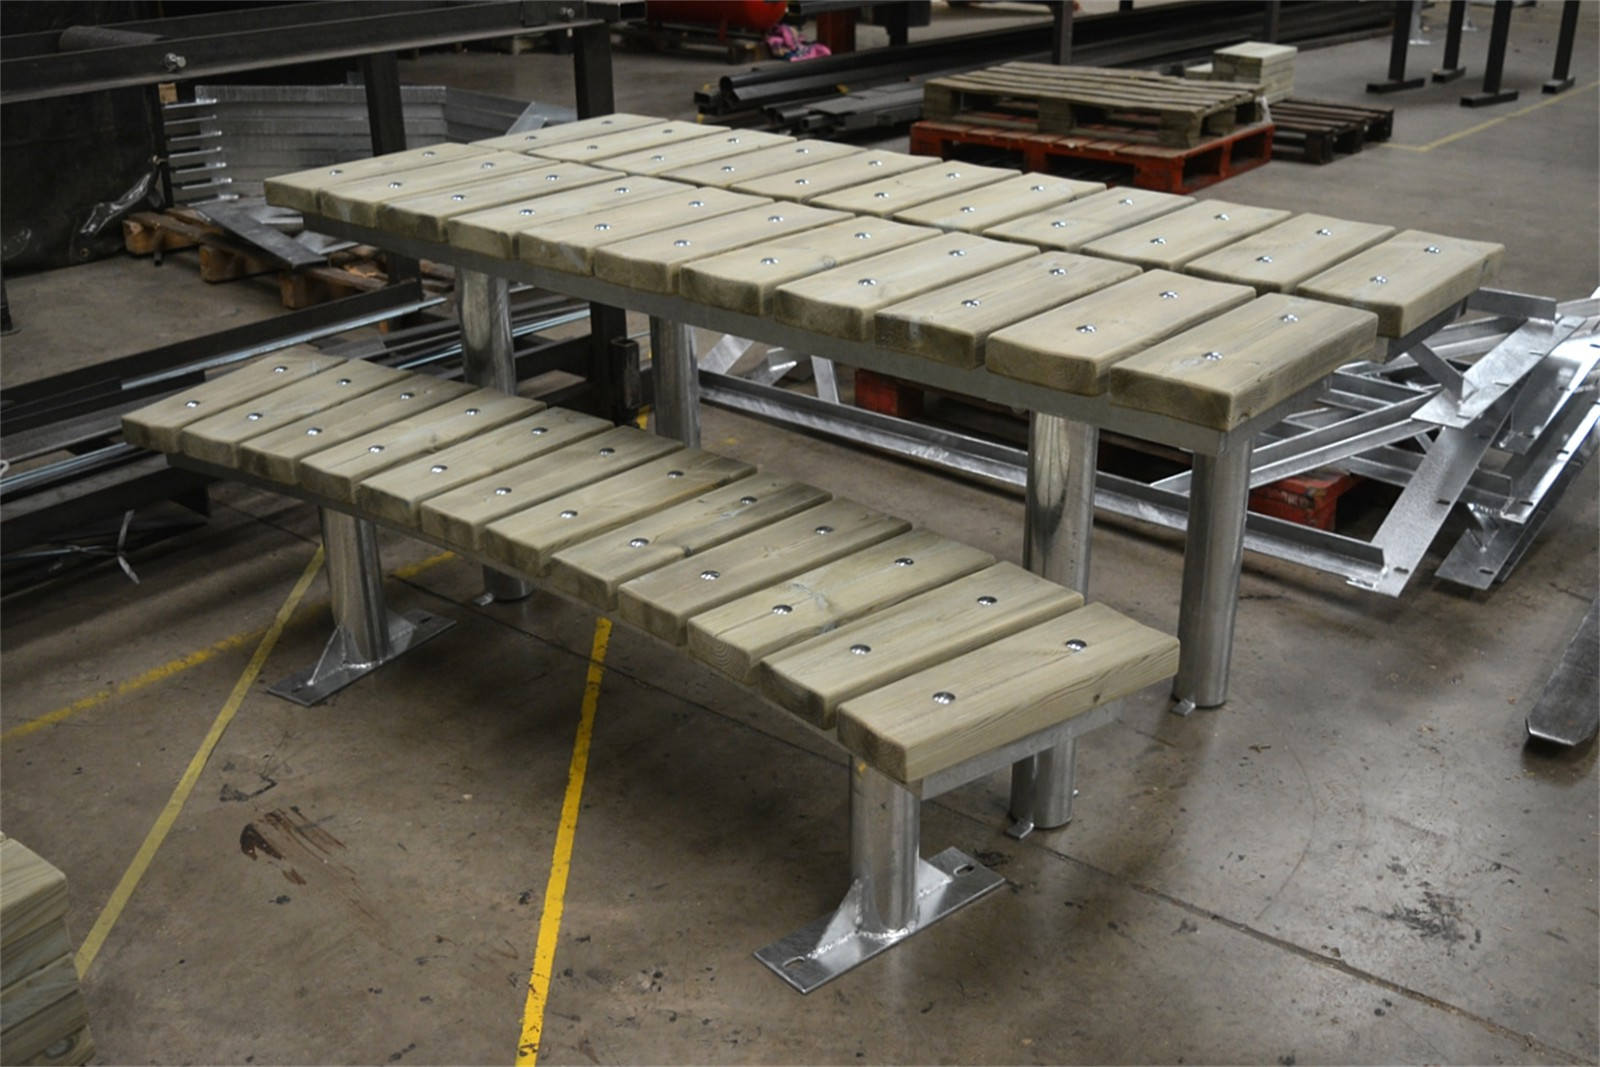 62ssp17 - Spalding curved and straight benches